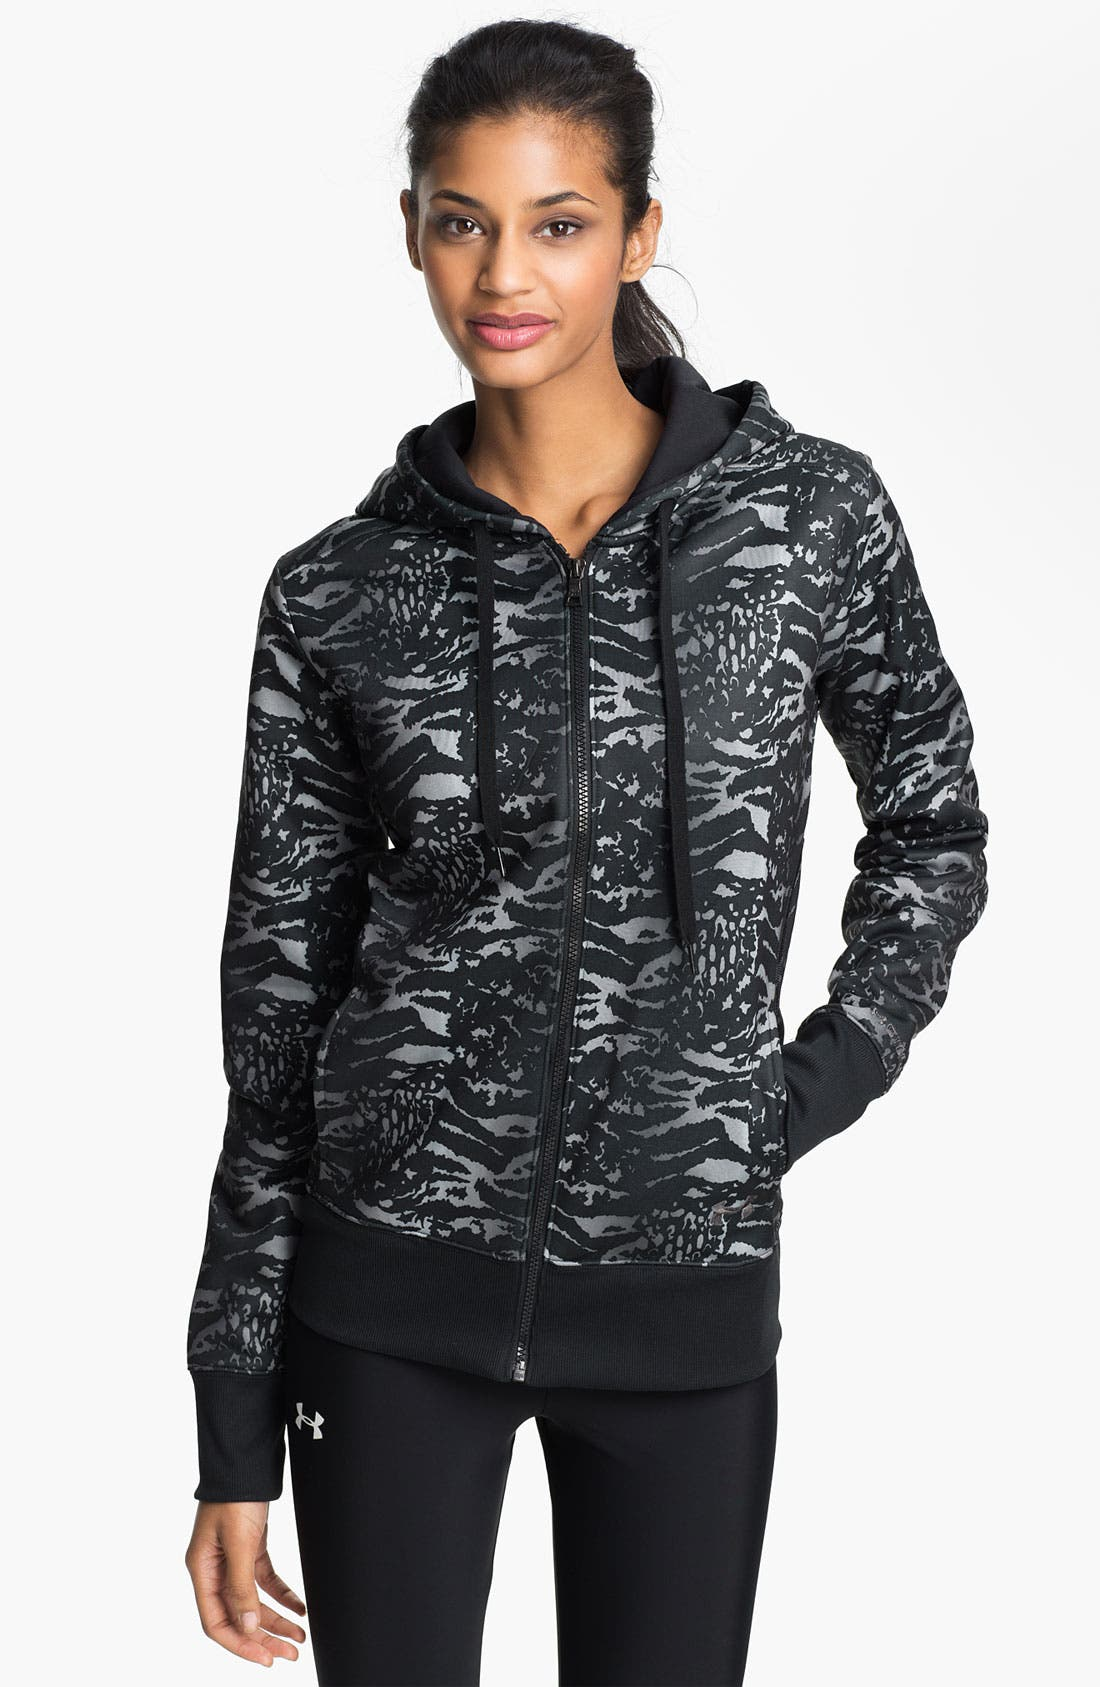 Alternate Image 1 Selected - Under Armour 'Armour Fleece®' Graphic Zip Up Hoodie